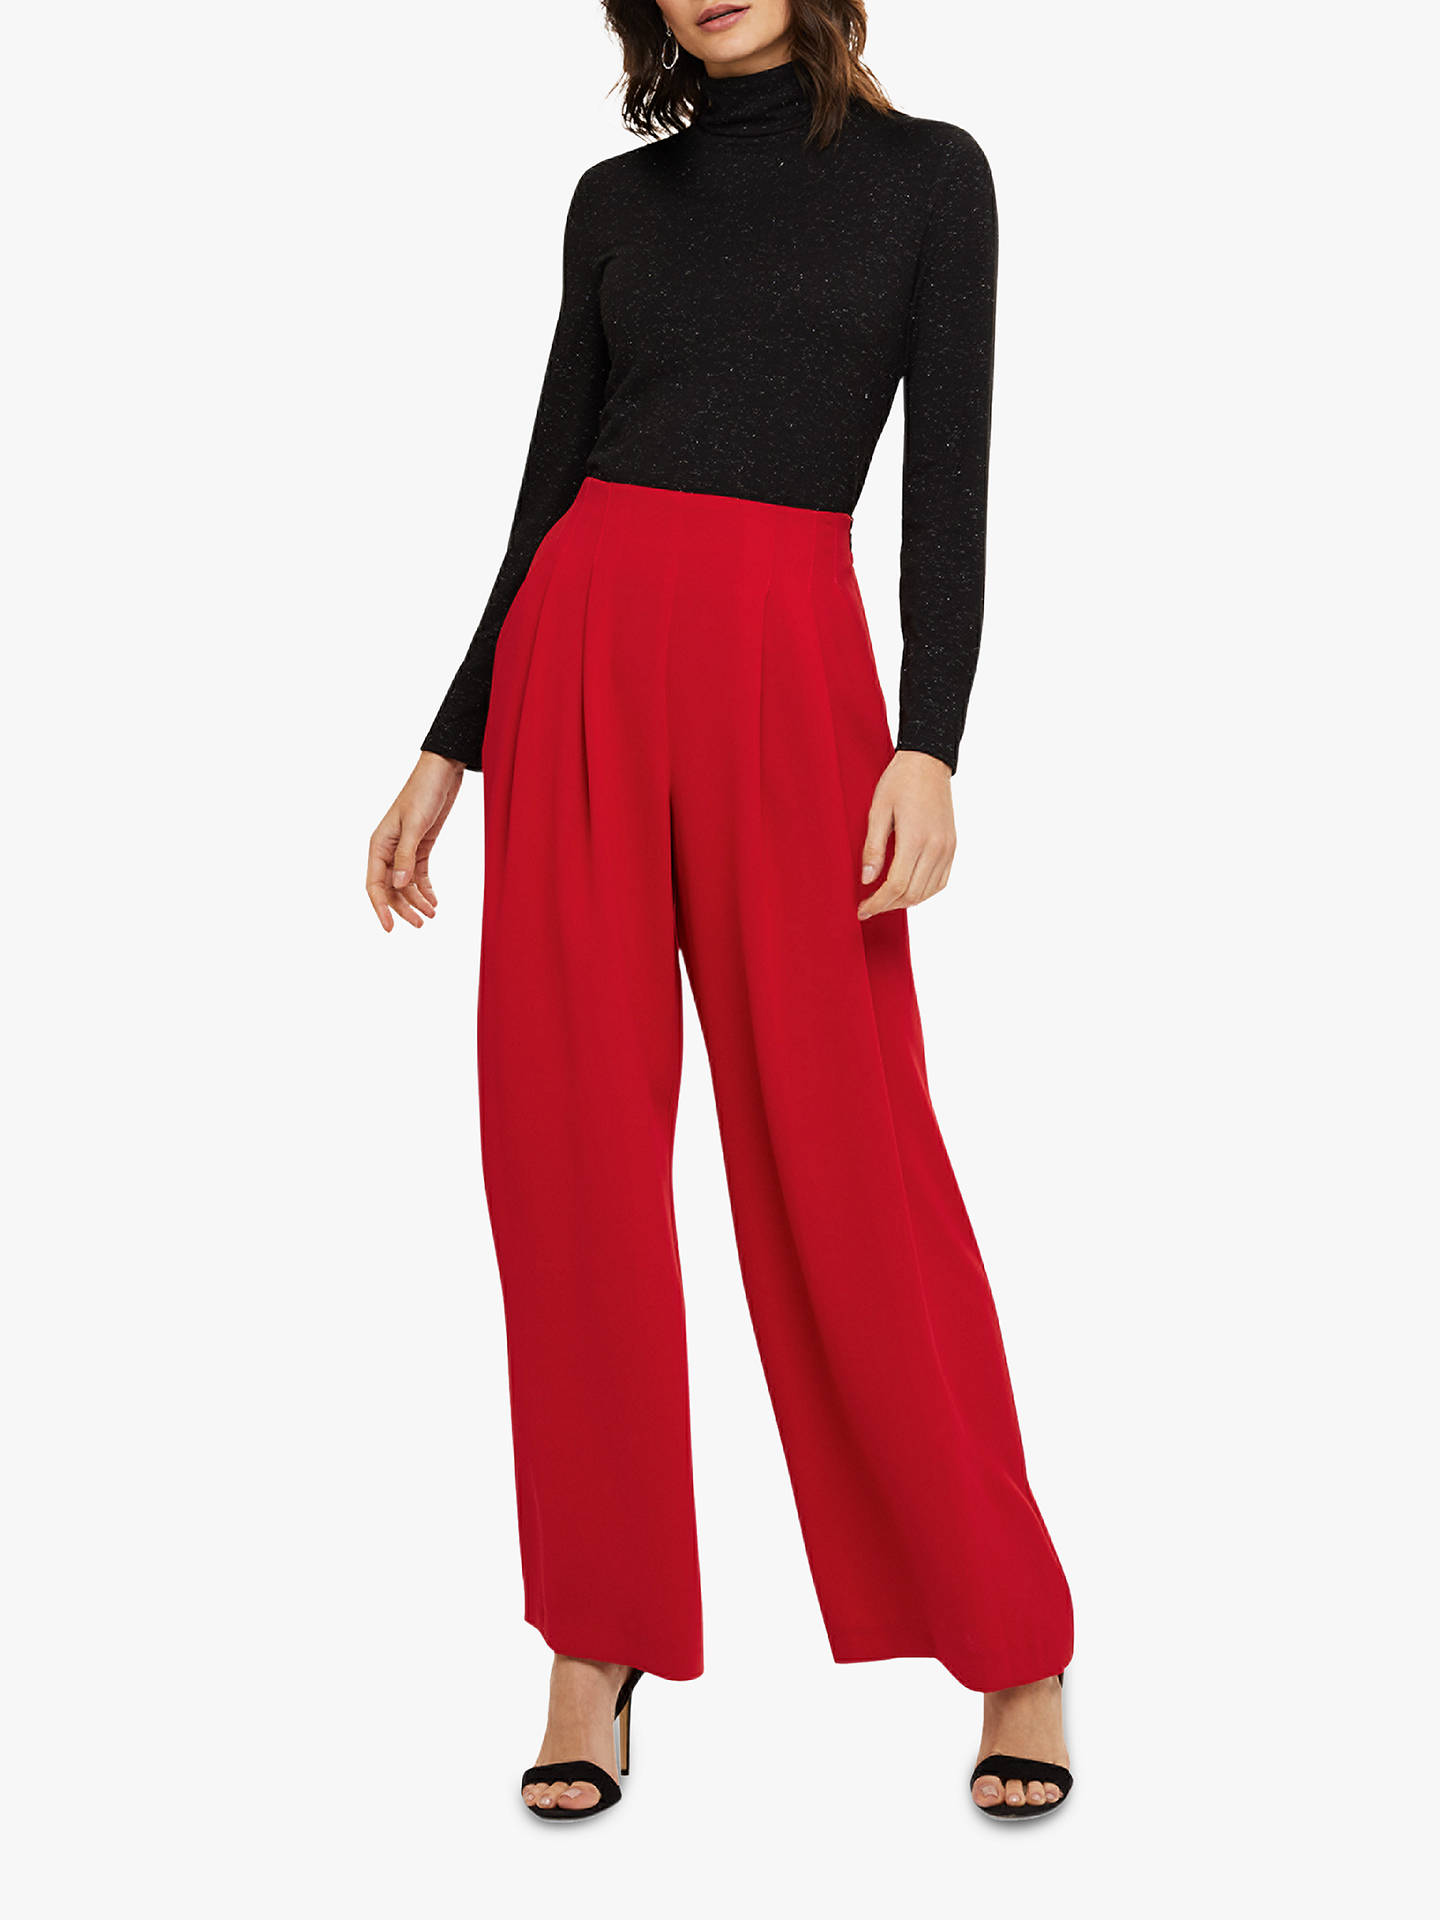 BuyPhase Eight Nicola Pleated Trousers, Red, 16 Online at johnlewis.com